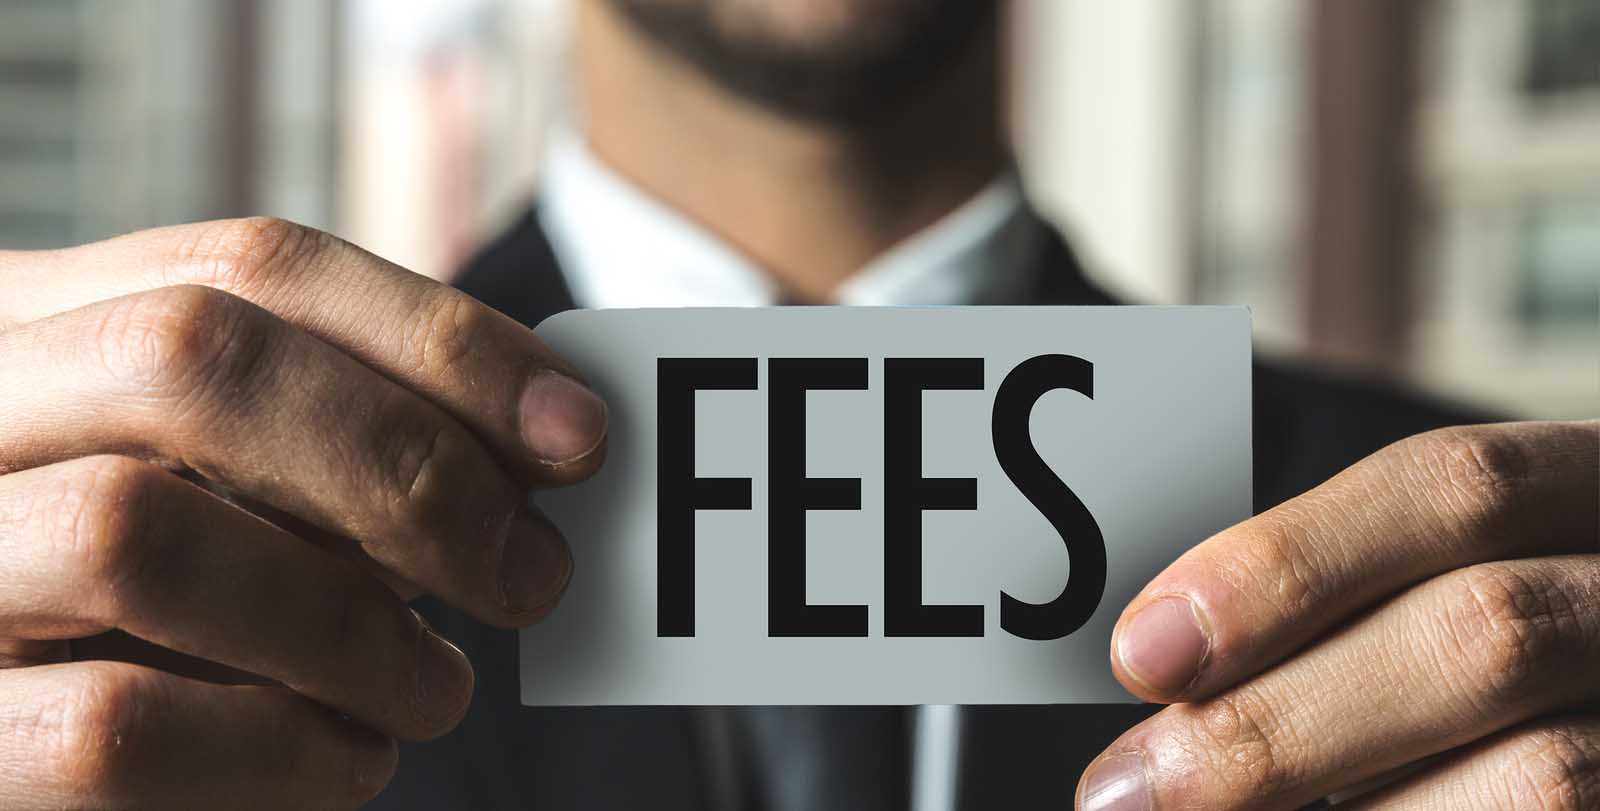 criminal lawyer fees